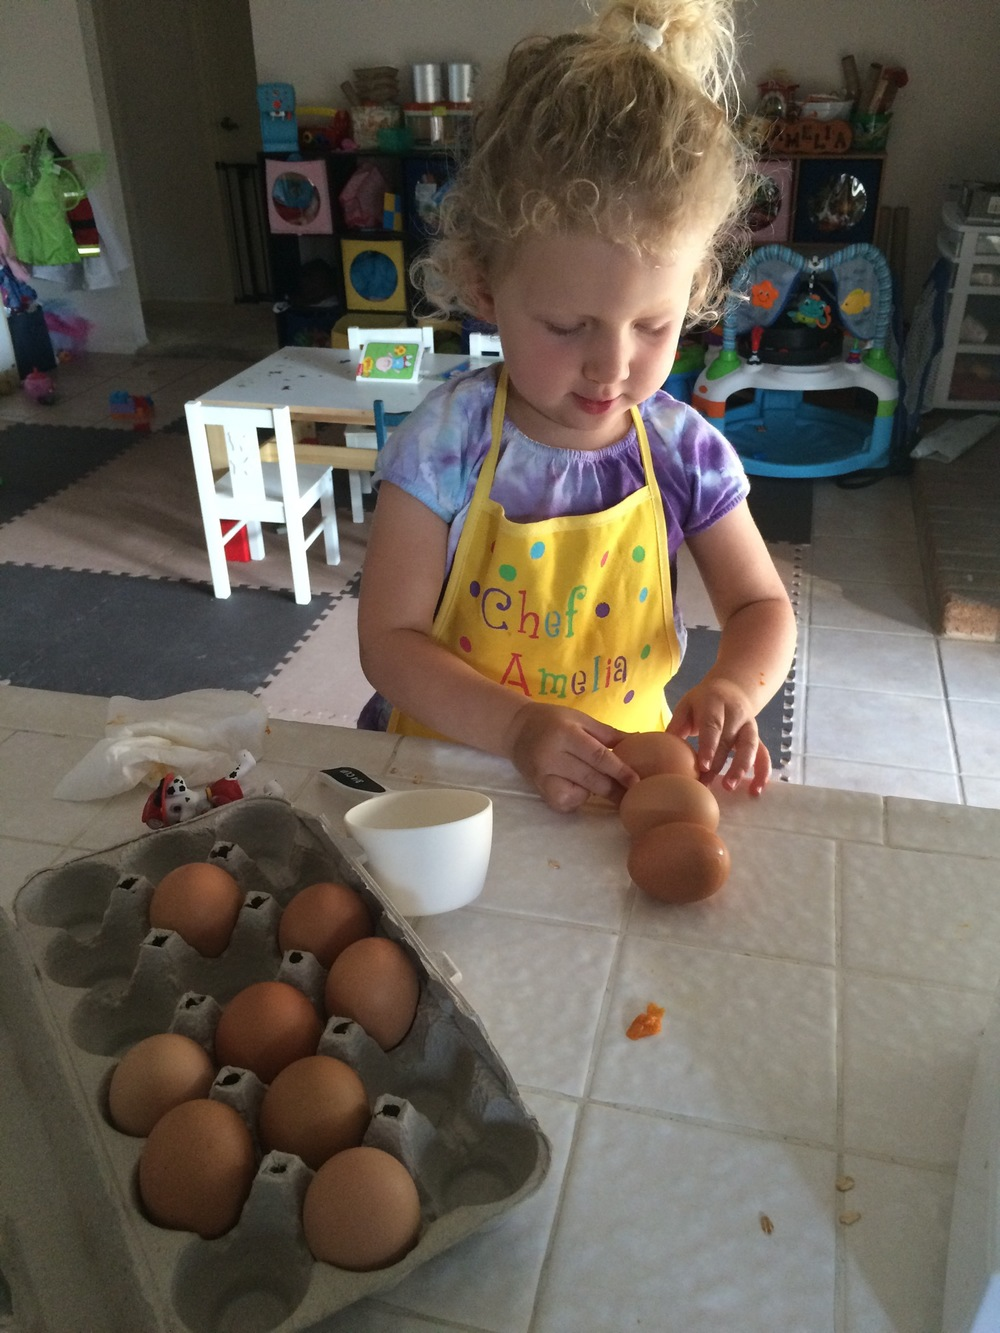 Choosing the Eggs